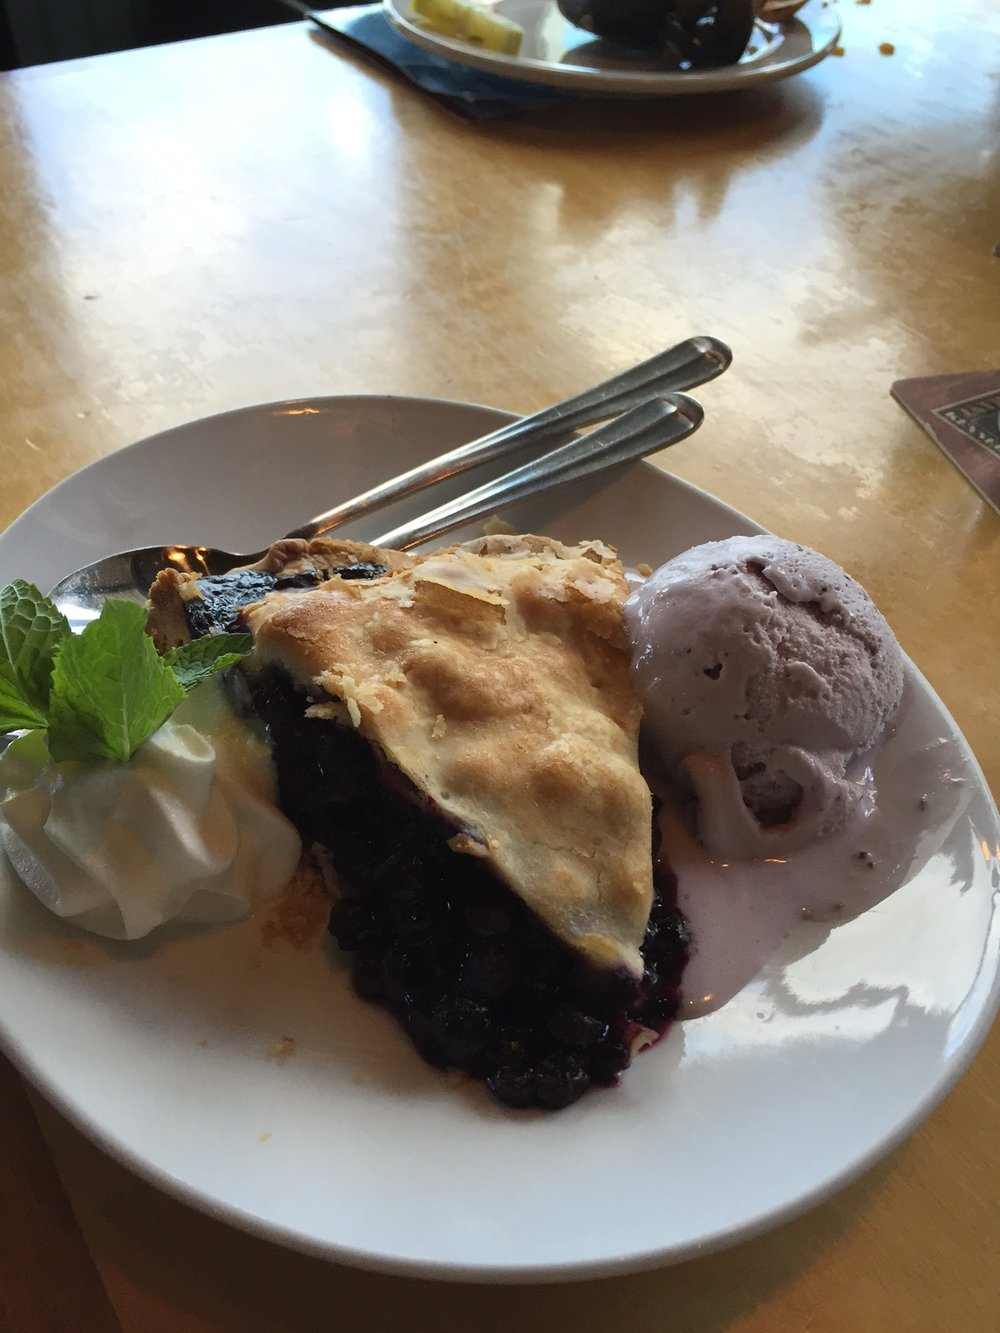 Wild blueberry pie in Maine...yes please!